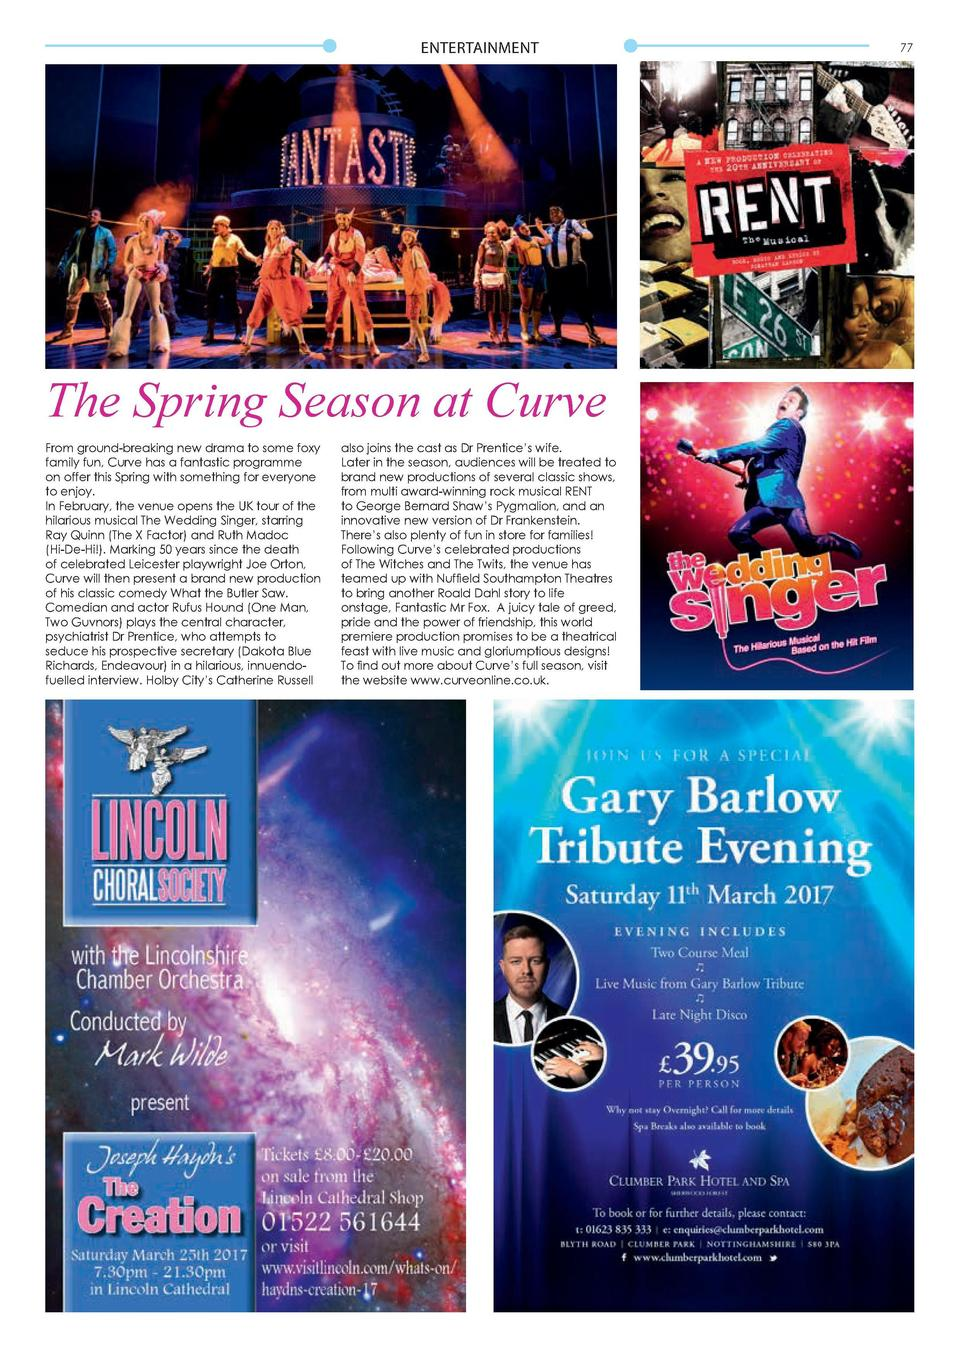 ENTERTAINMENT  The Spring Season at Curve From ground-breaking new drama to some foxy family fun, Curve has a fantastic pr...